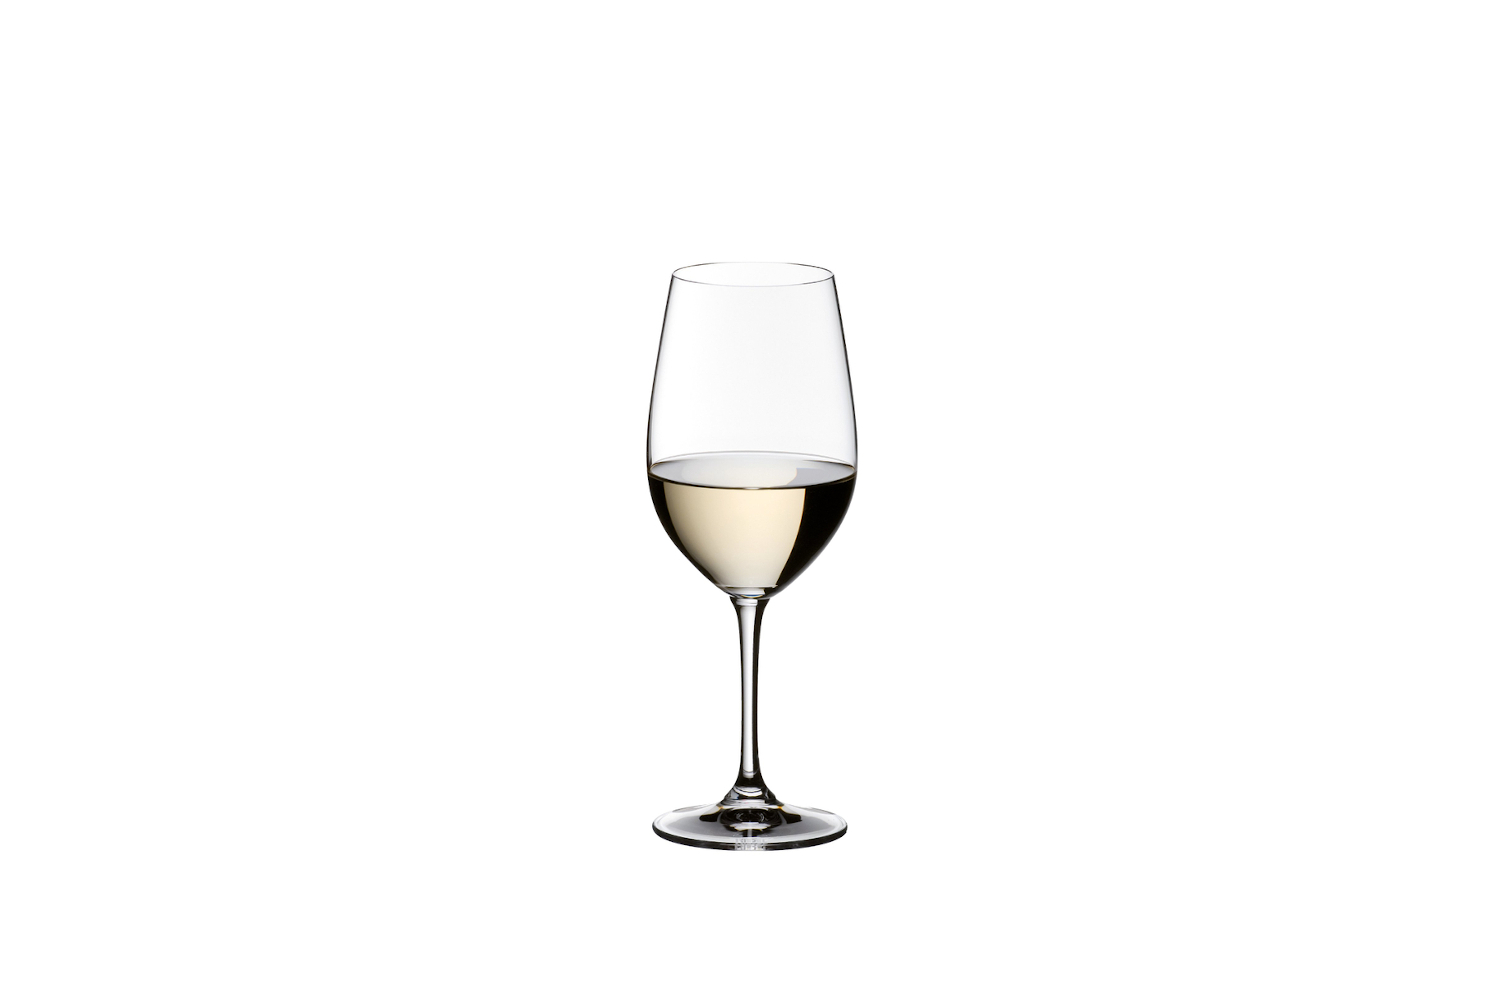 Riedel Vinum Wine Glasses - Zinfandel, Riesling Grand Cru (Set of 2)